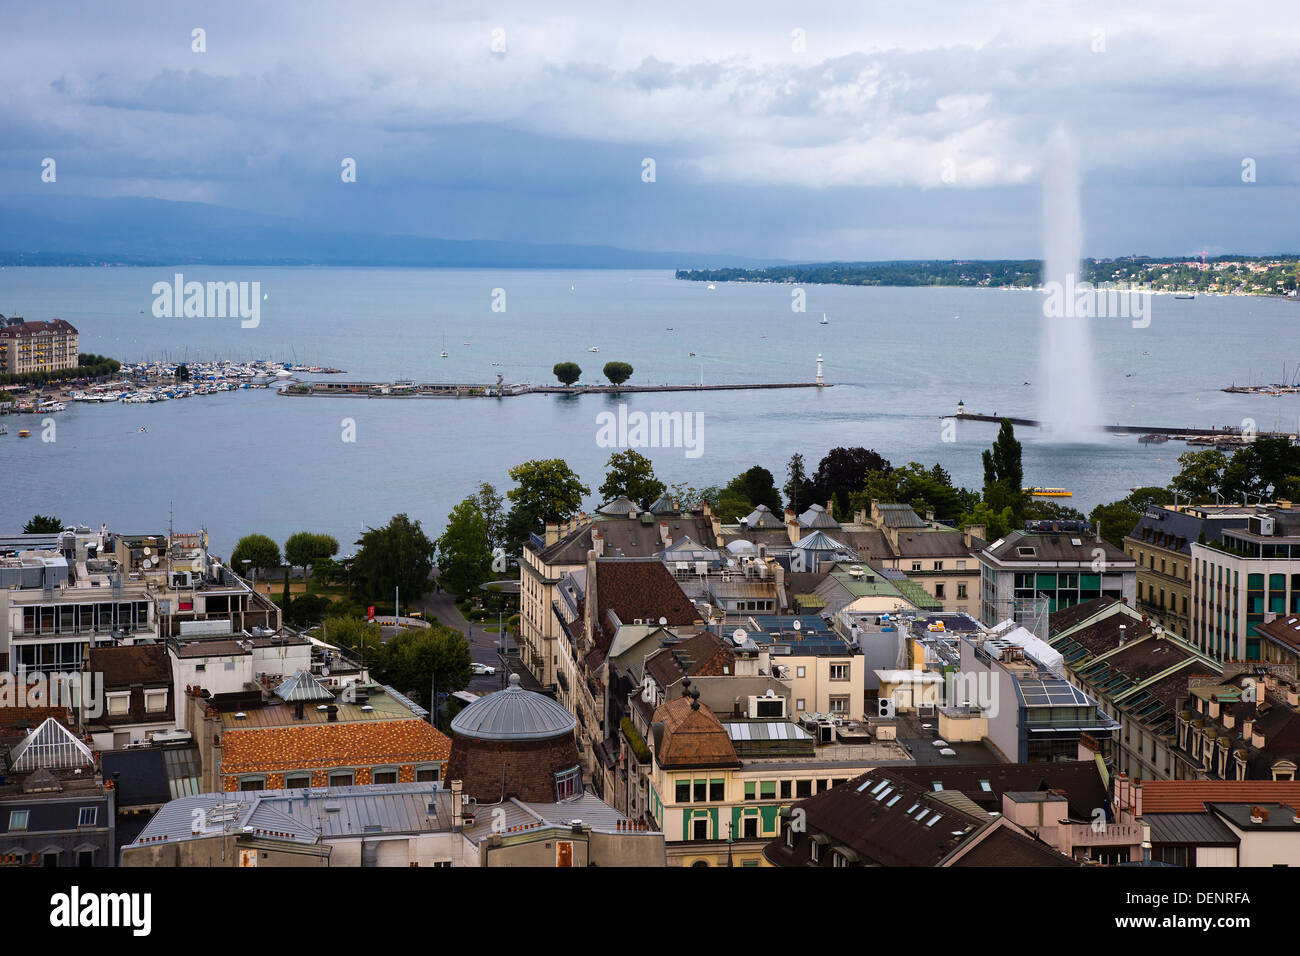 Aerial view of Geneva Lake and the Jet d'eau taken from a tower of the Cathedrale Saint Pierre (Saint Peter Cathedral), Geneva - Stock Image